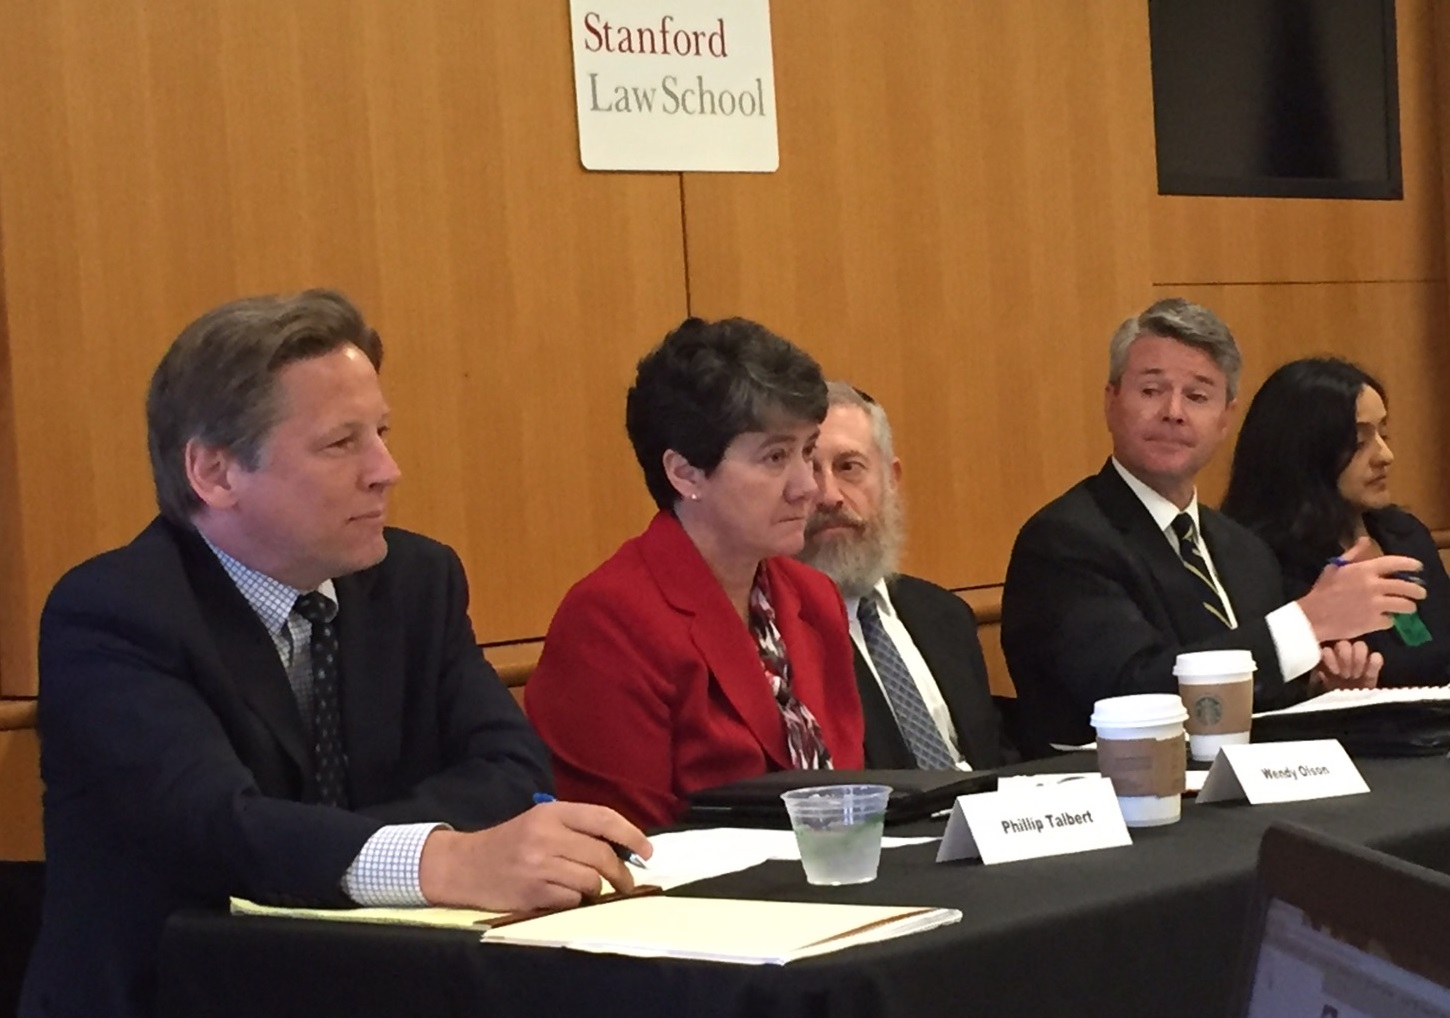 U.S. Attorney Talbert at Stanford Roundtable on Religious Discrimination in Education